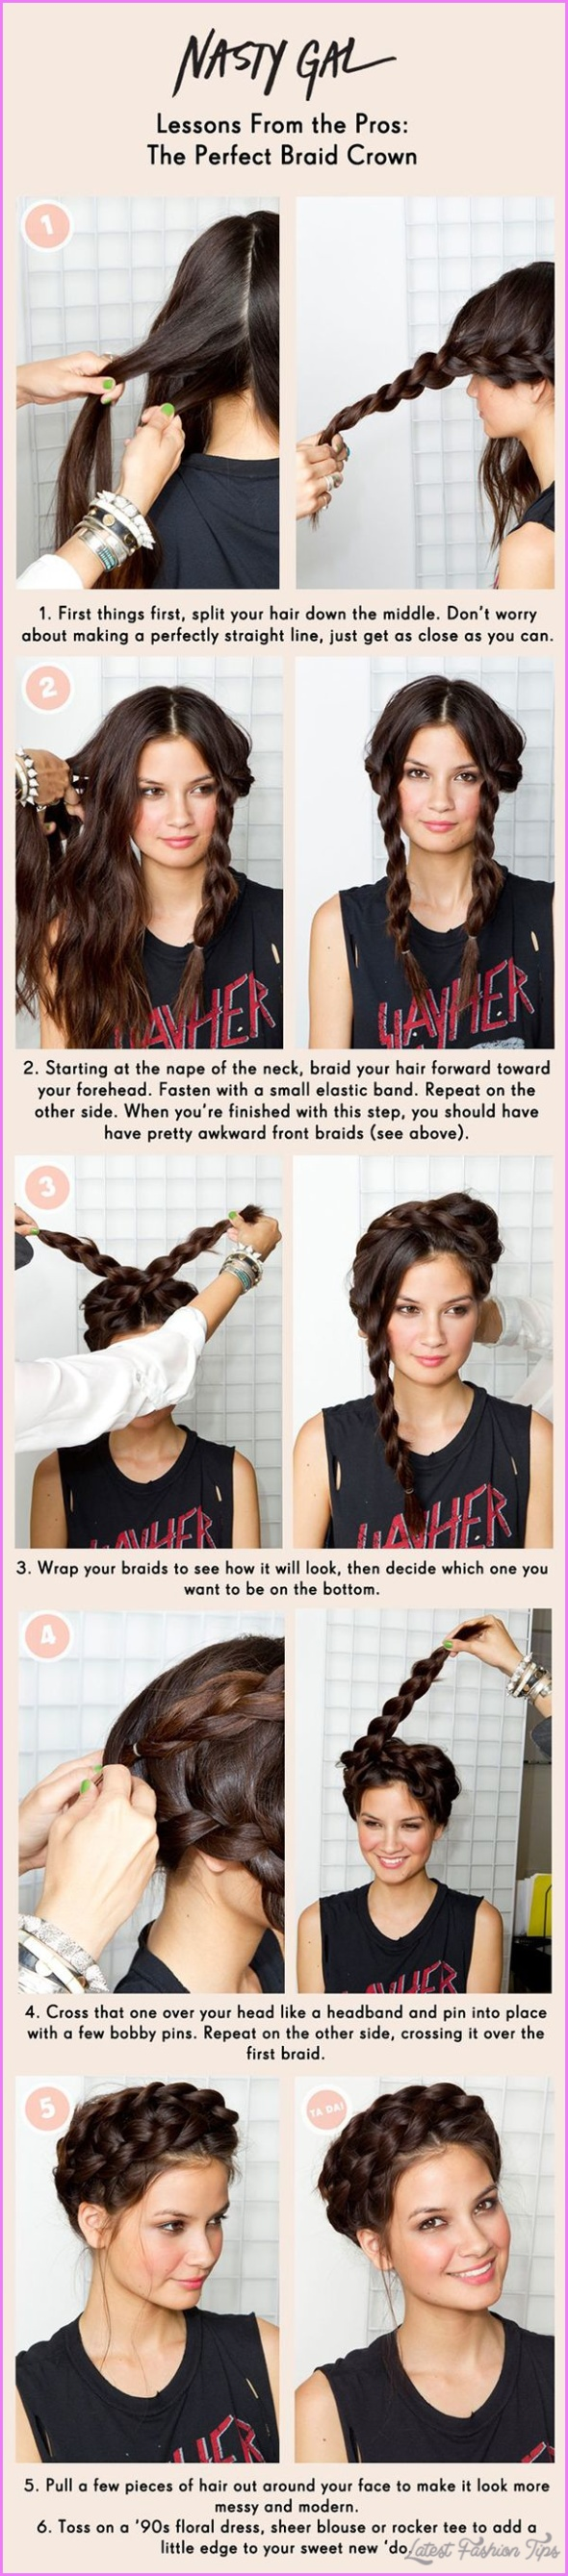 Hairstyling Steps that Can Ruin Your 'Do_2.jpg